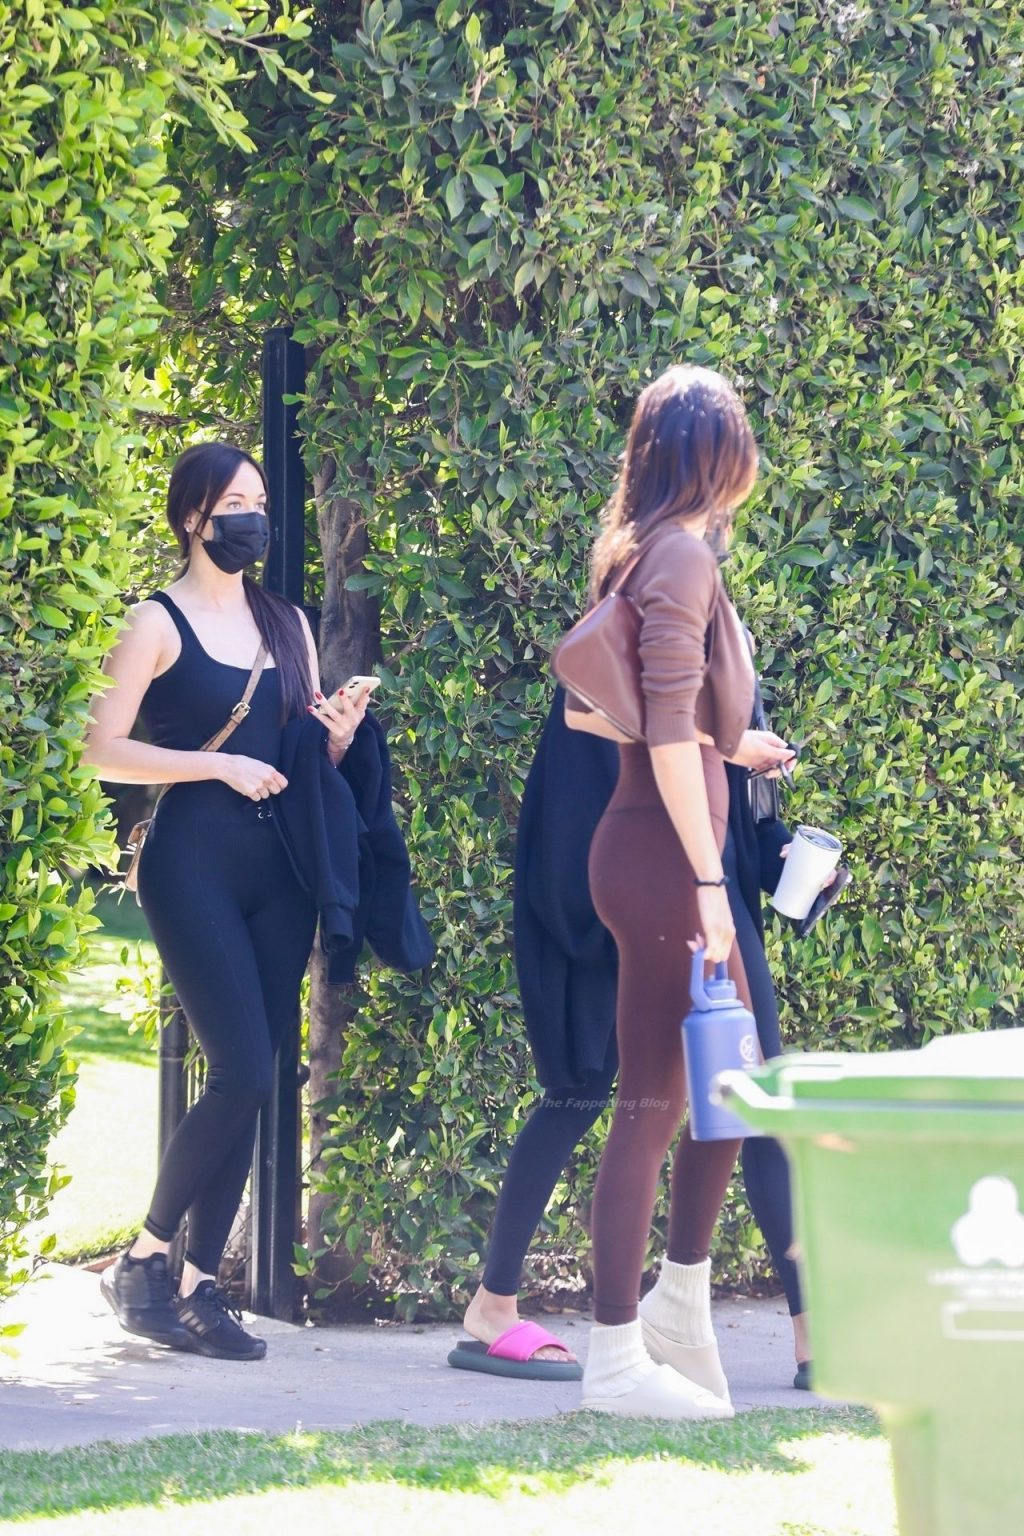 Kendall Jenner & Hailey Bieber Put Their Taut Abs on Display (142 Photos)